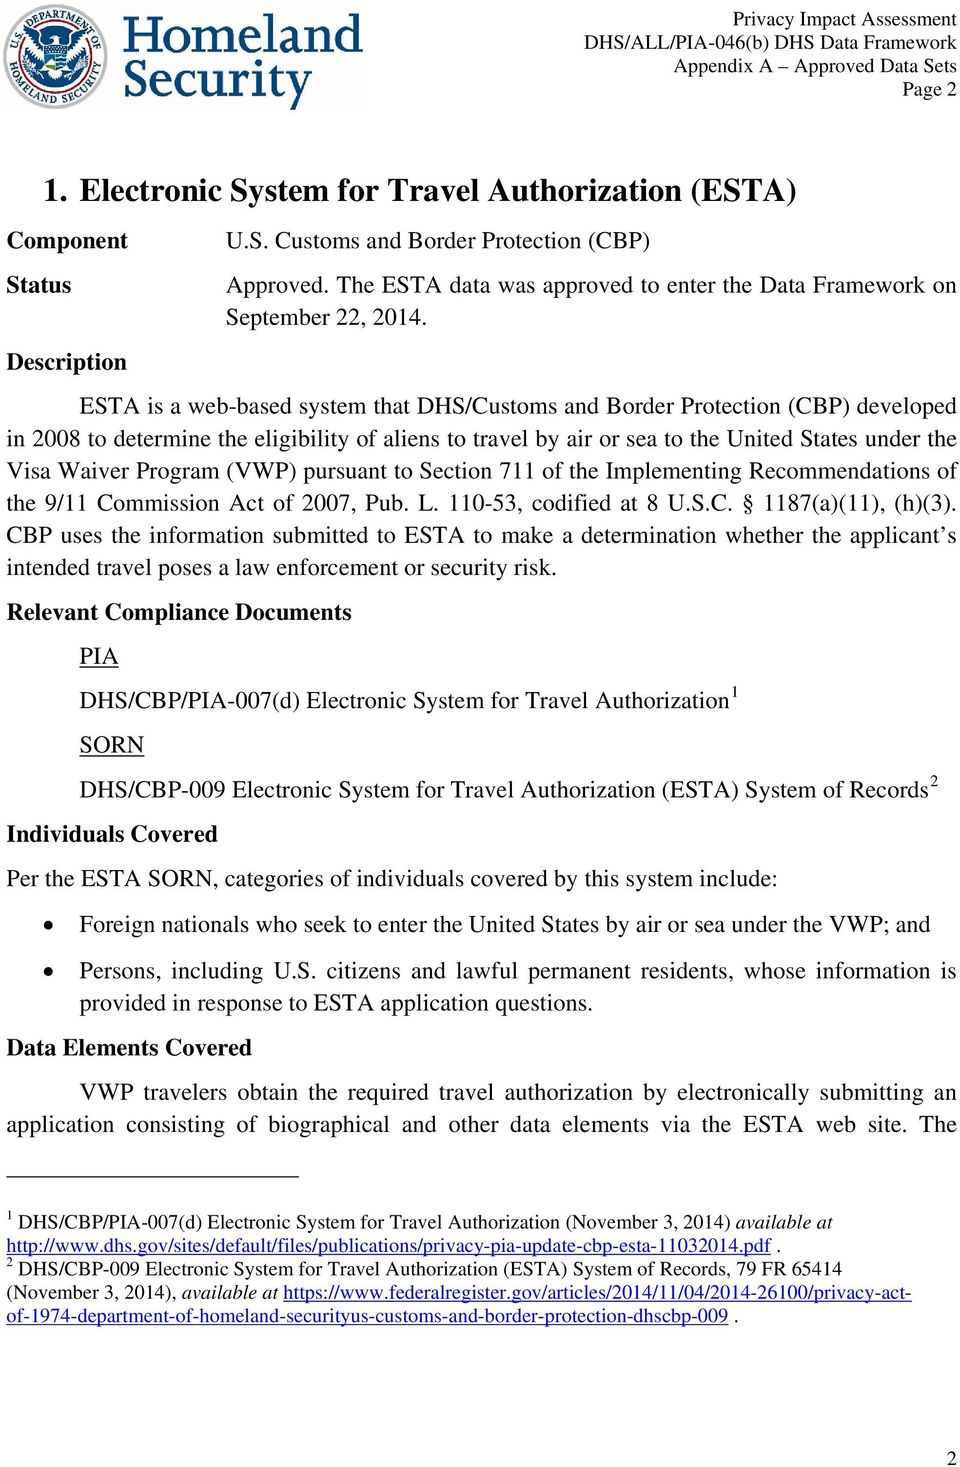 ESTA is a web-based system that DHS/Customs and Border Protection (CBP) developed in 2008 to determine the eligibility of aliens to travel by air or sea to the United States under the Visa Waiver